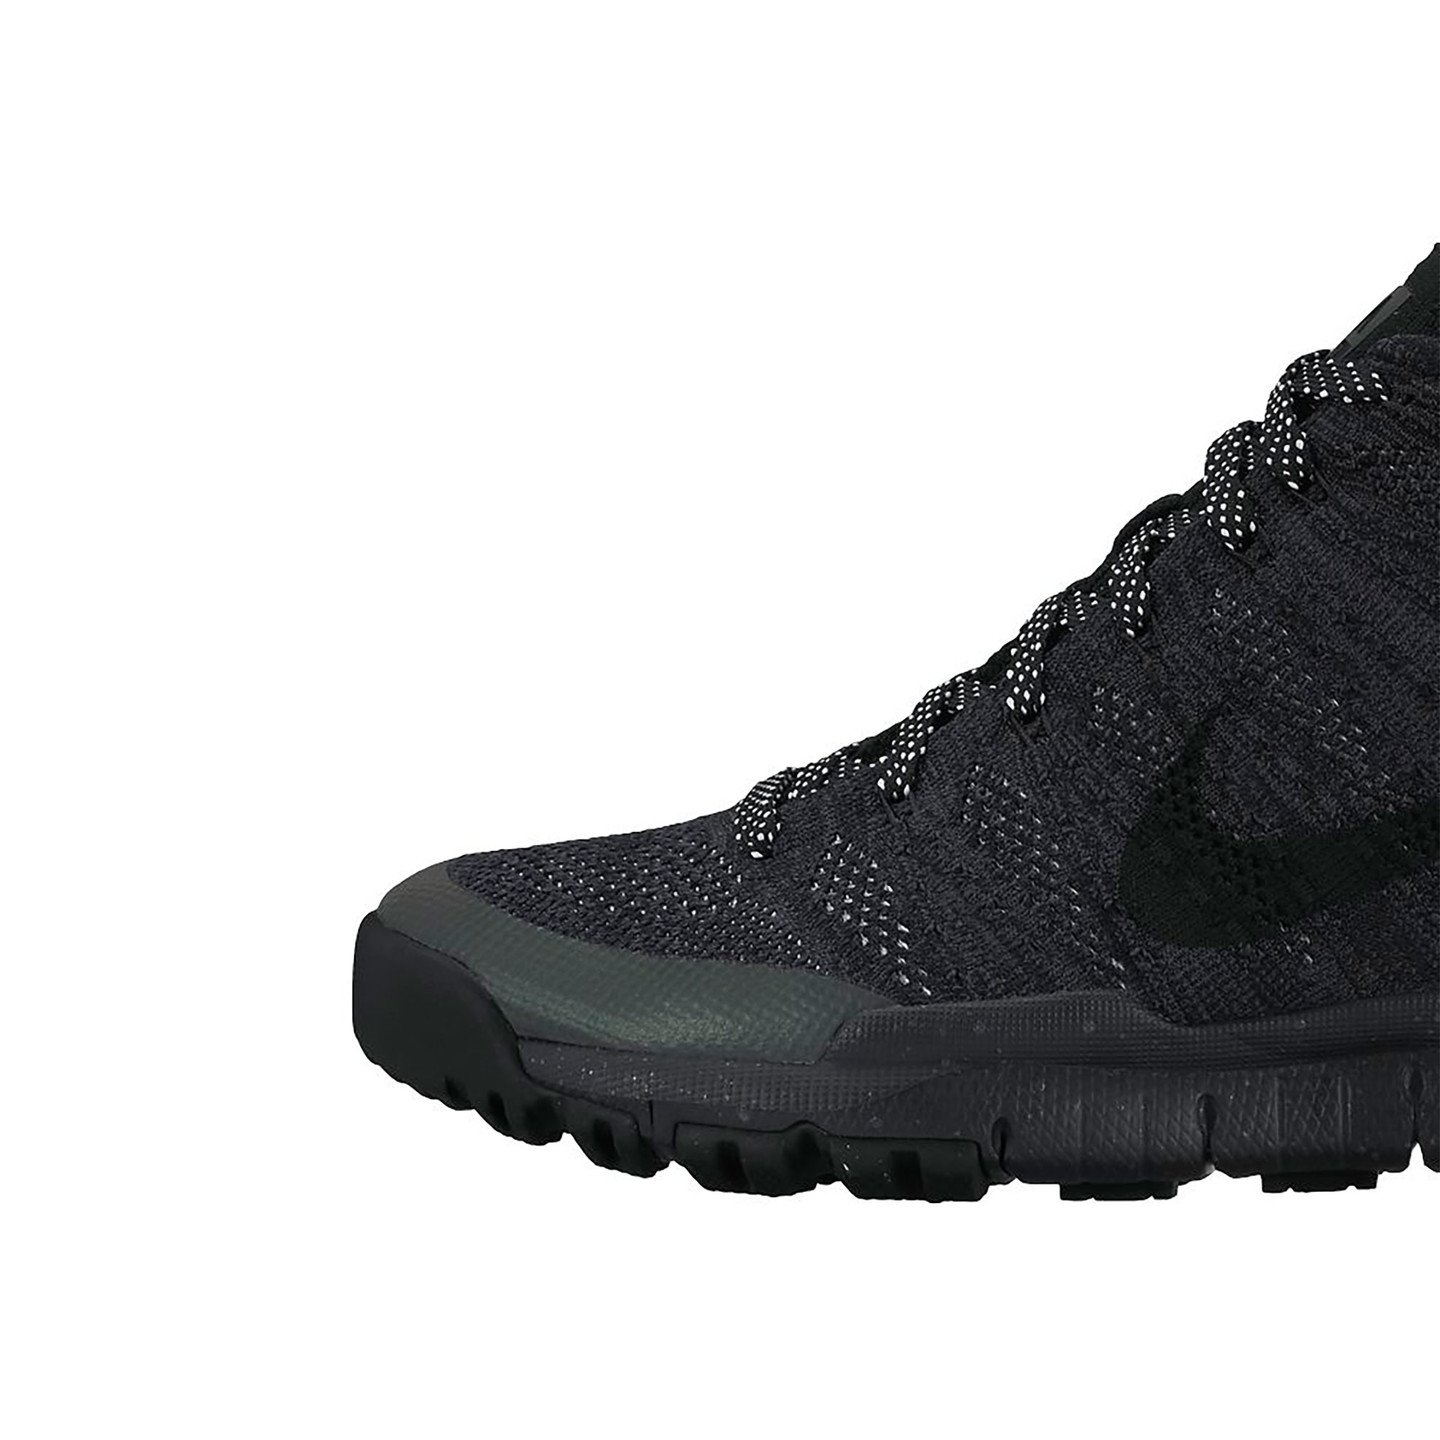 Nike Flyknit Trainer Chukka Sneakerboot Black / Anthracite 805092-001-45